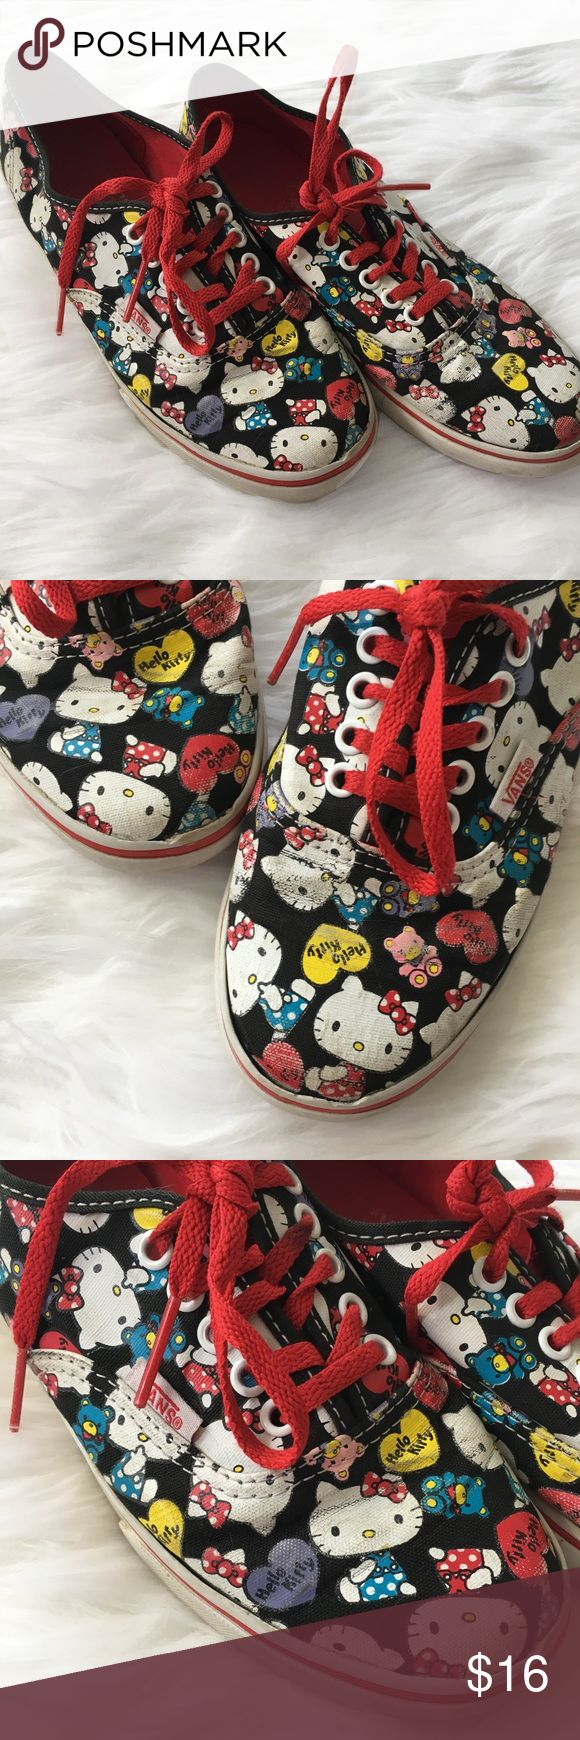 Hello Kitty Print Vans Hello Kitty Vans. Some spots of the print have faded and the fabric is starting to pull away from the rubber which is pictured in the last photo. This have lots of life left.   ⭐️10% off 2+ bundle  ⭐️Size 6 ⭐️Smoke free home Vans Shoes Sneakers